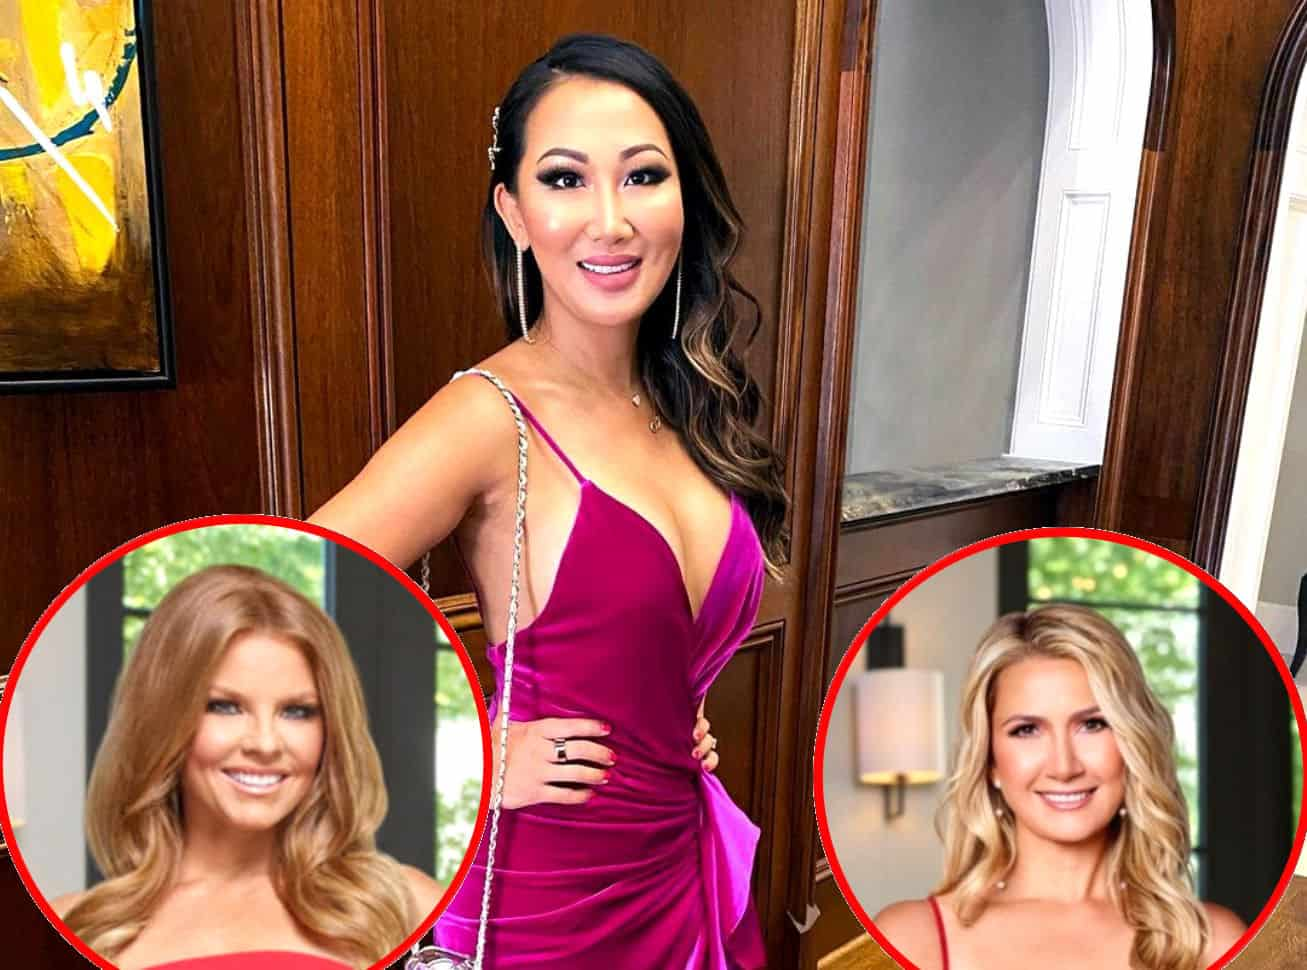 """RHOD's Dr. Tiffany Moon Reflects on """"Toxic Situation"""" With Costars, Addresses Brandi Redmond's Claims of Being Uncomfortable, Plus Responds to Fan Who Suggests Kary Brittingham is a Bad Friend"""